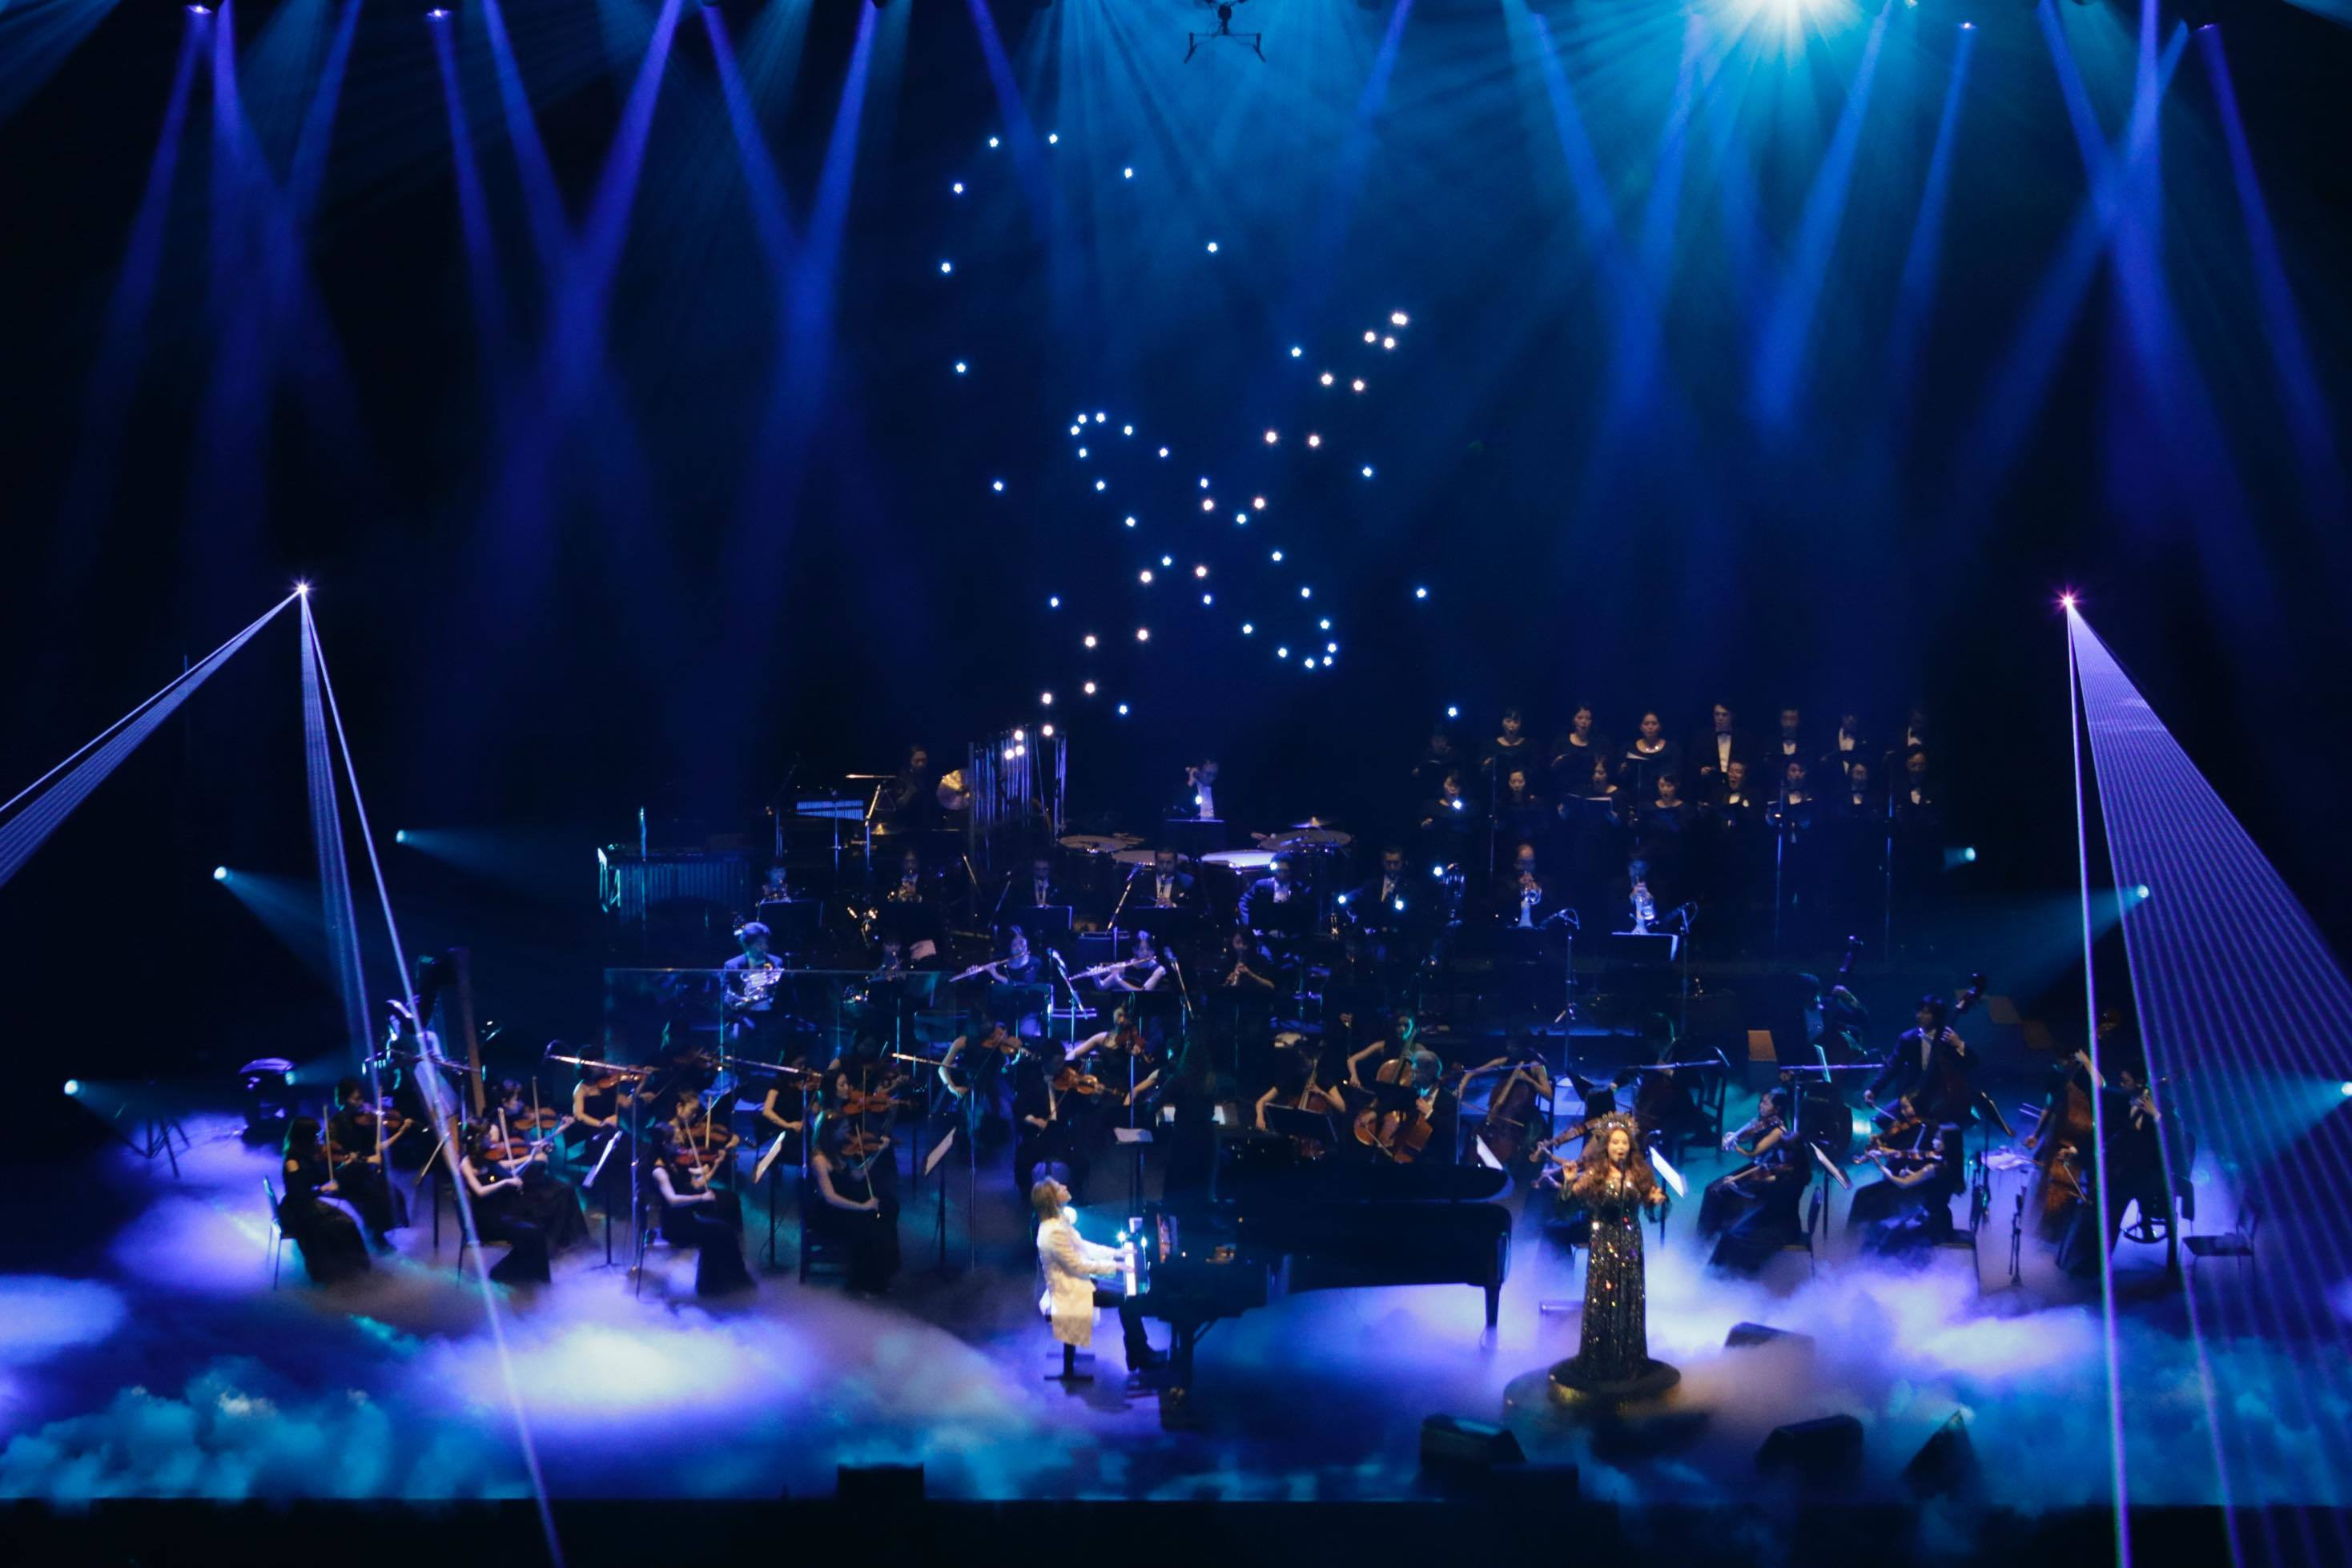 『YOSHIKI CLASSICAL 2018 〜紫に染まった夜〜 YOSHIKI with Philharmonic Orchestra』